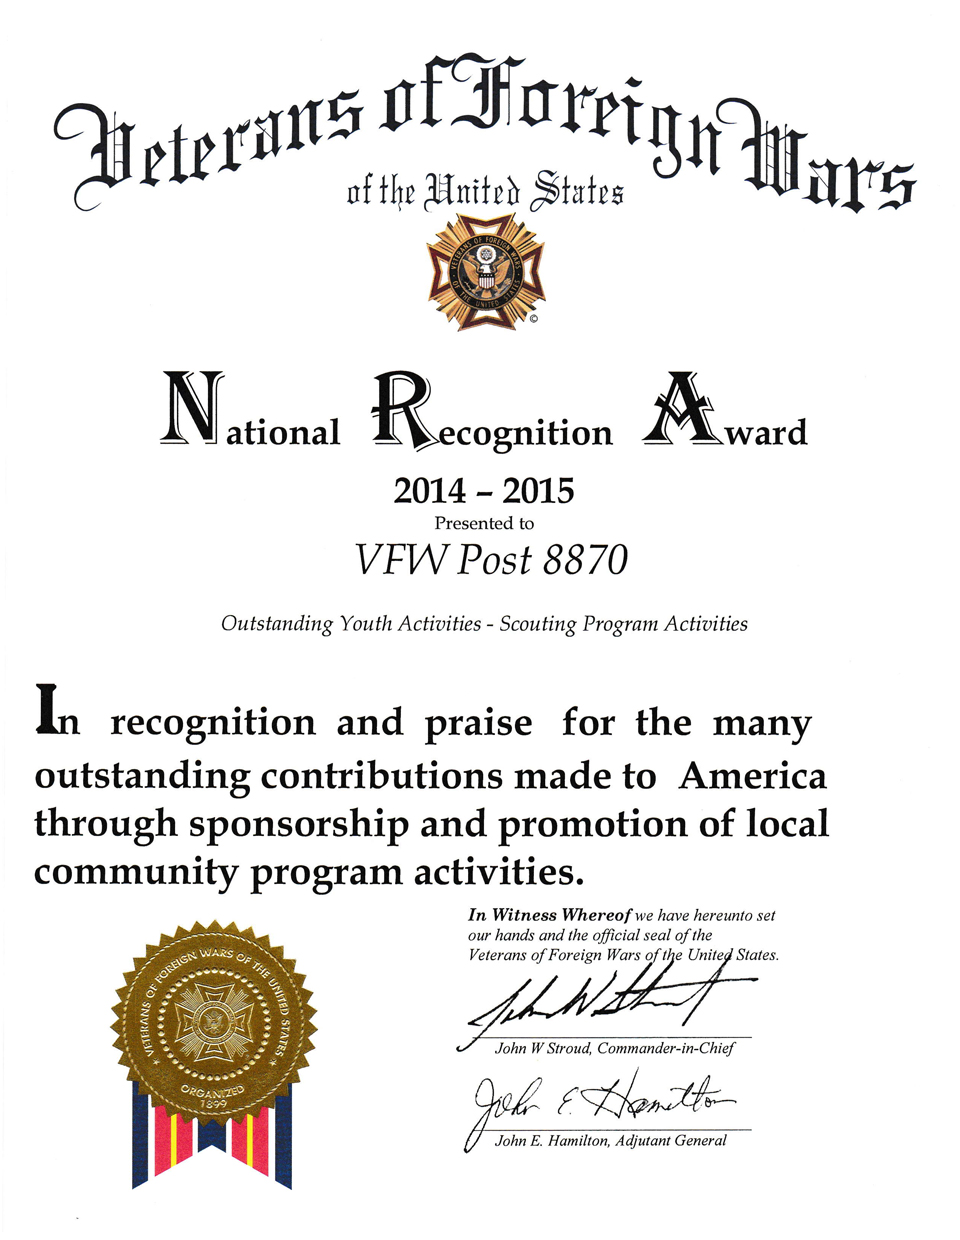 National Recognition Award 2014-2015 Outstanding Youth Actibities - Scouting Program Activities